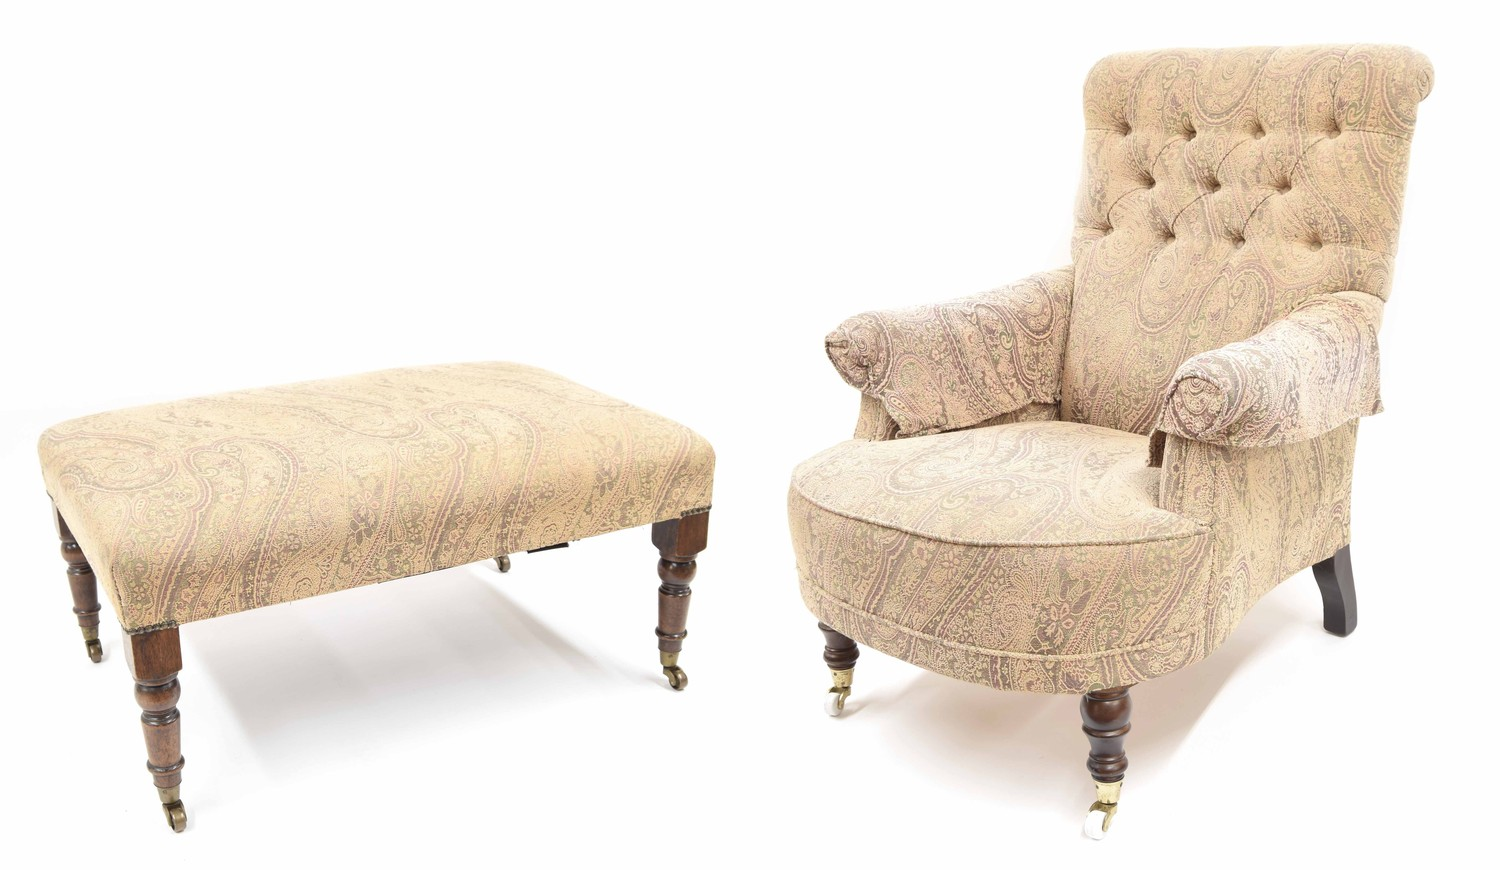 Victorian style button-back upholstered armchair, with a pale paisley style design upholstery upon